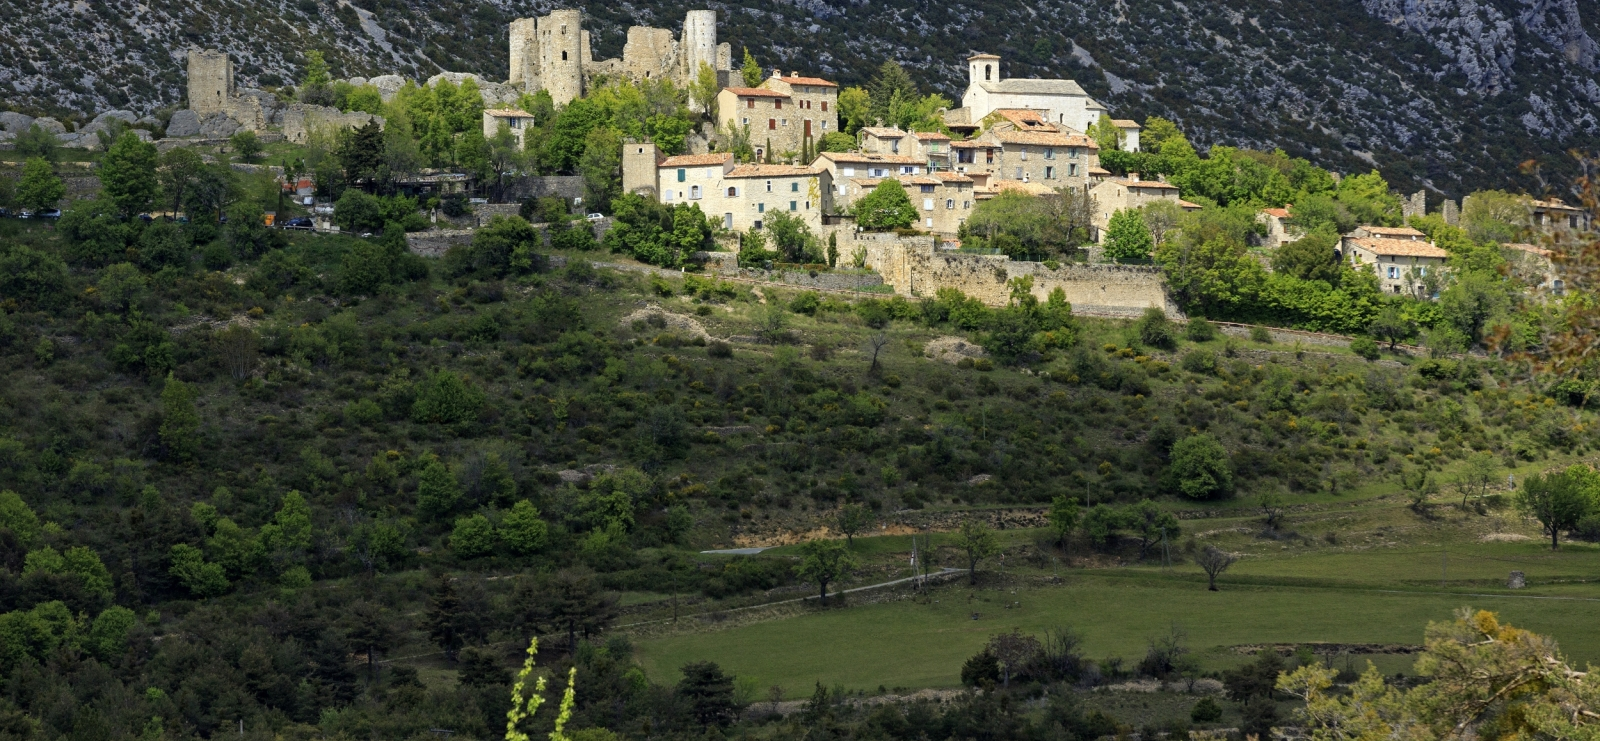 Village de Bargème